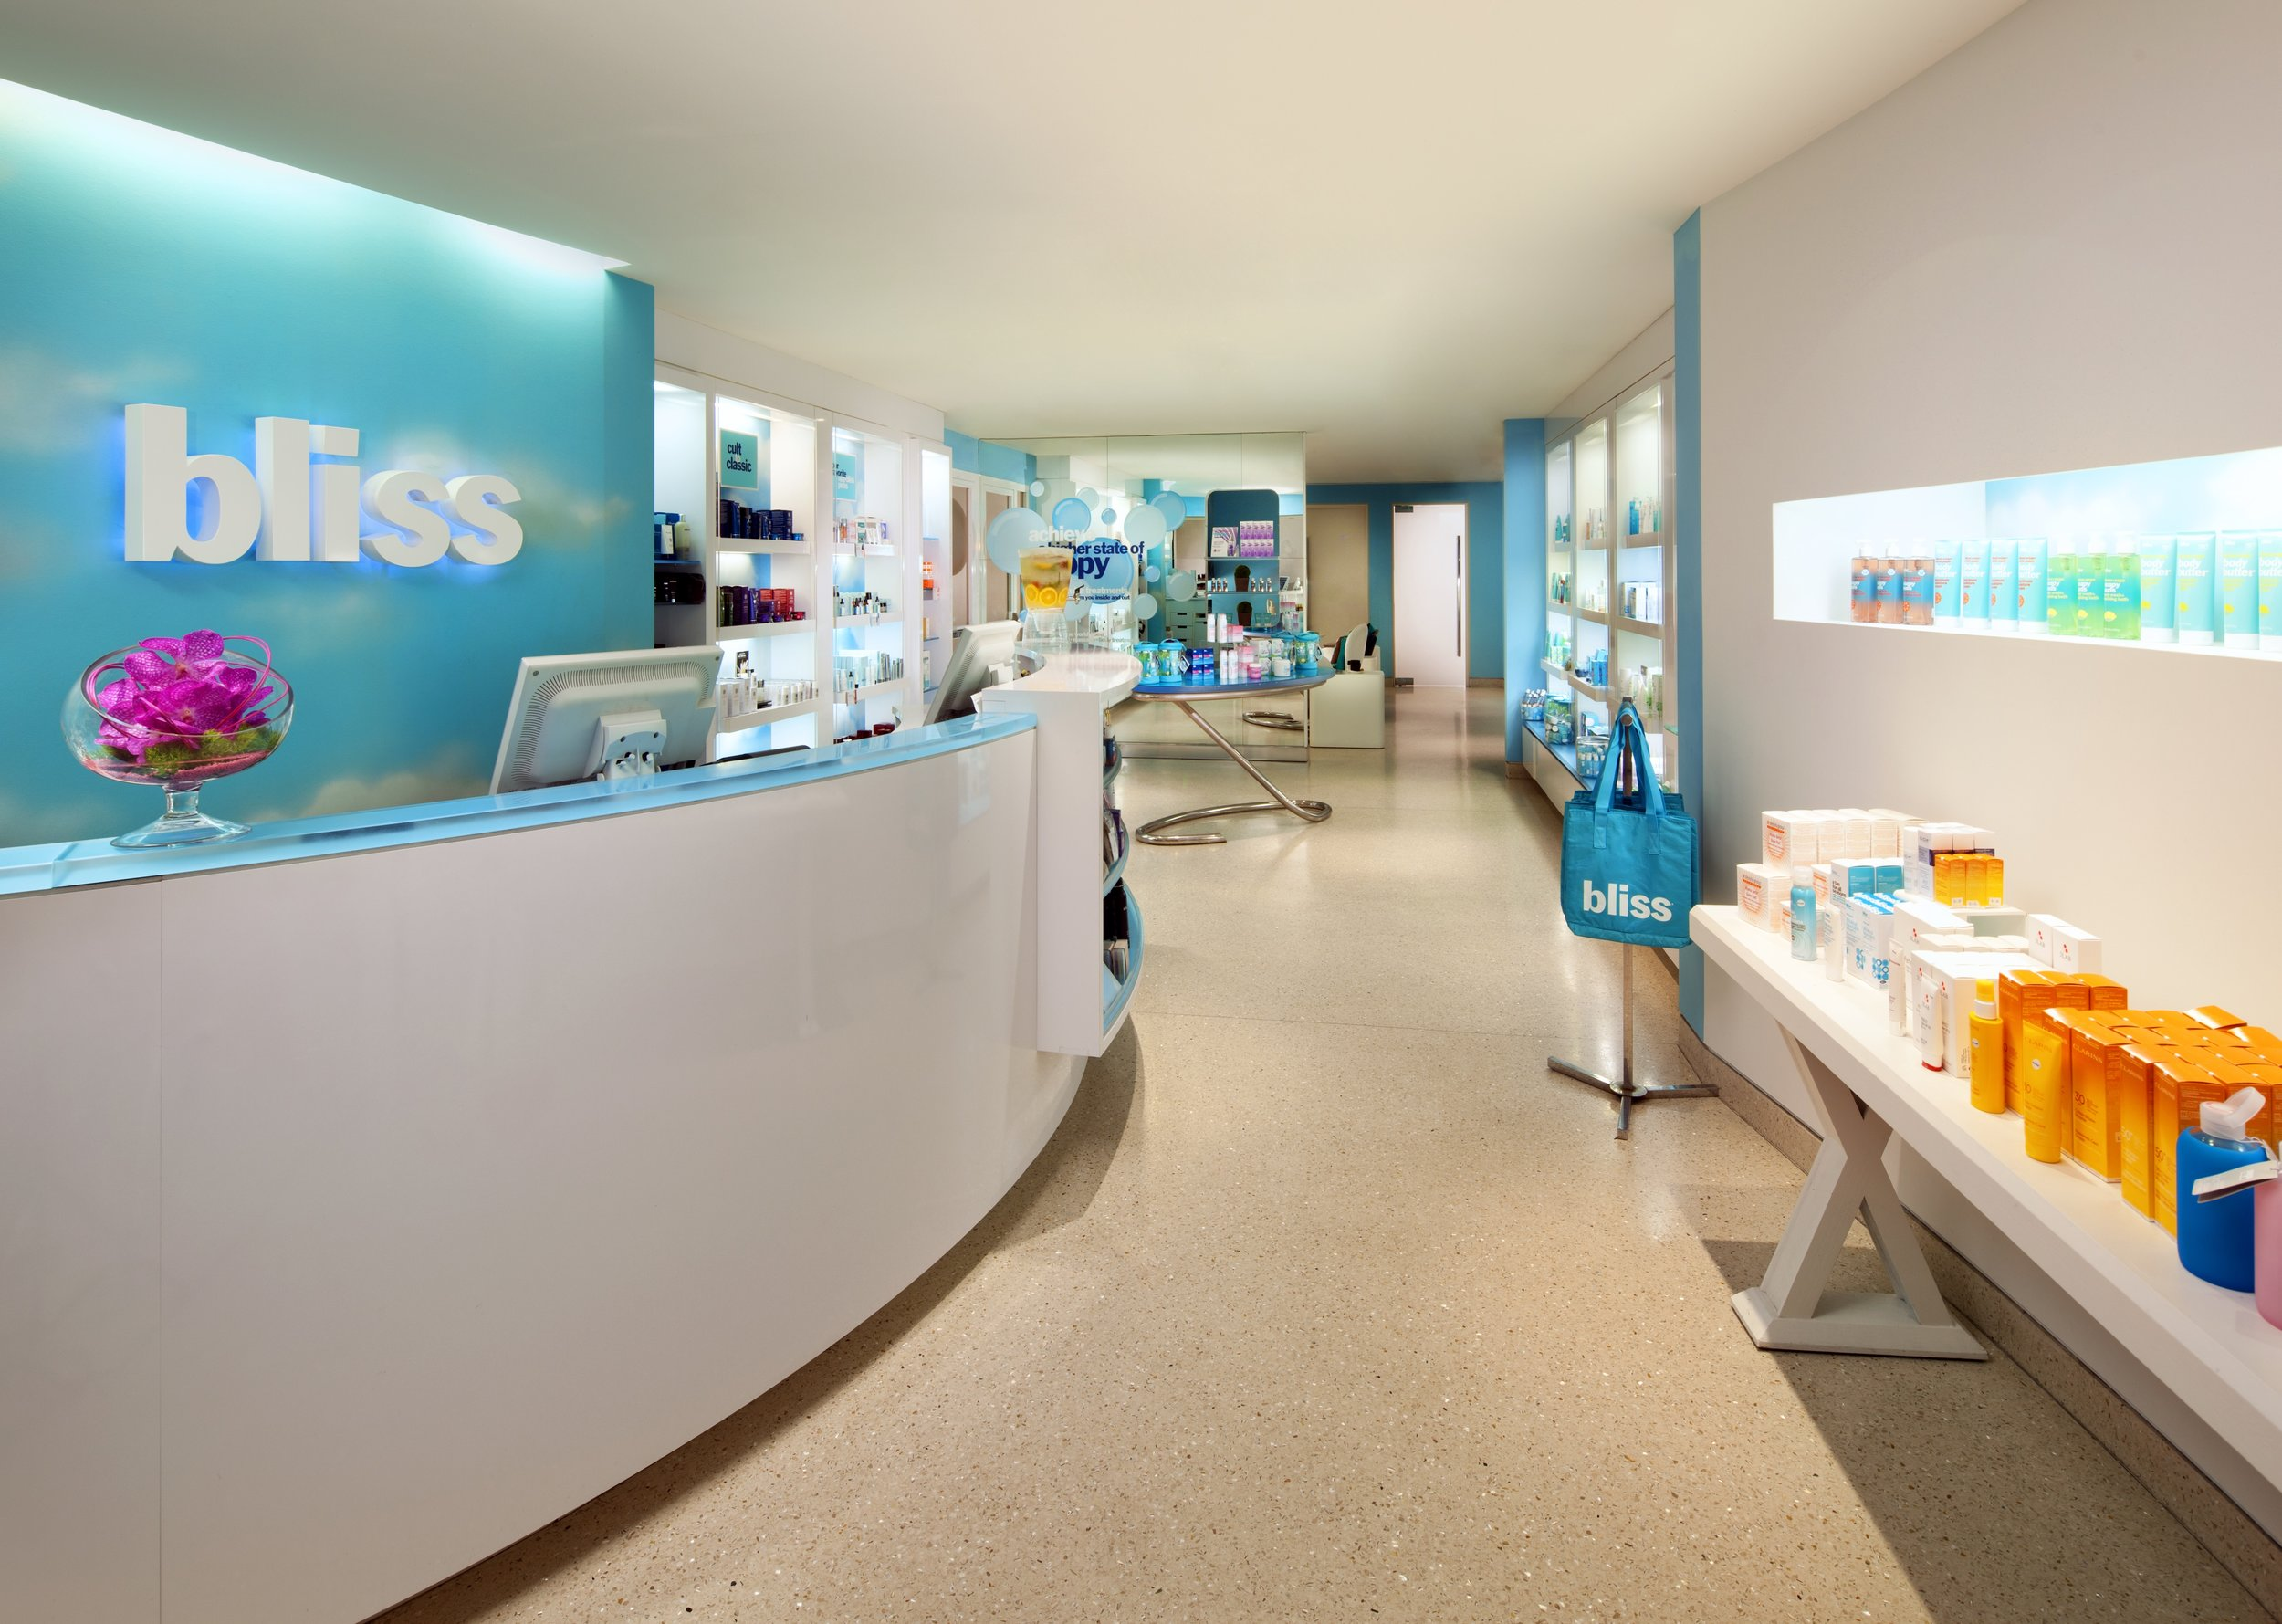 The Bliss Spa